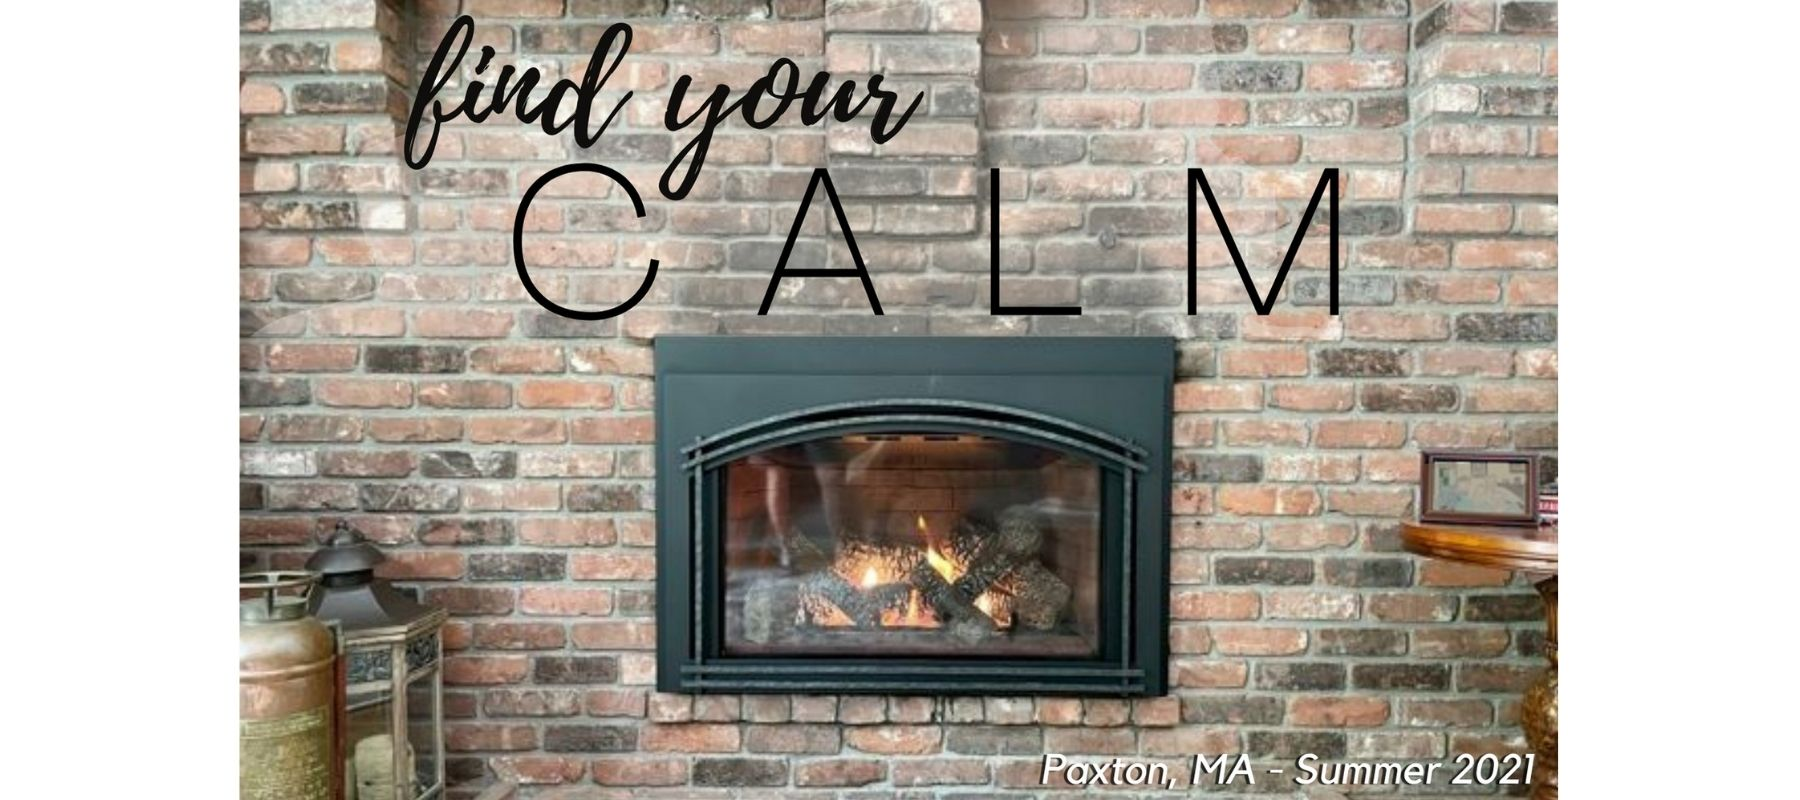 find your calm with a new fireplace or stove from Enchanted Fireside